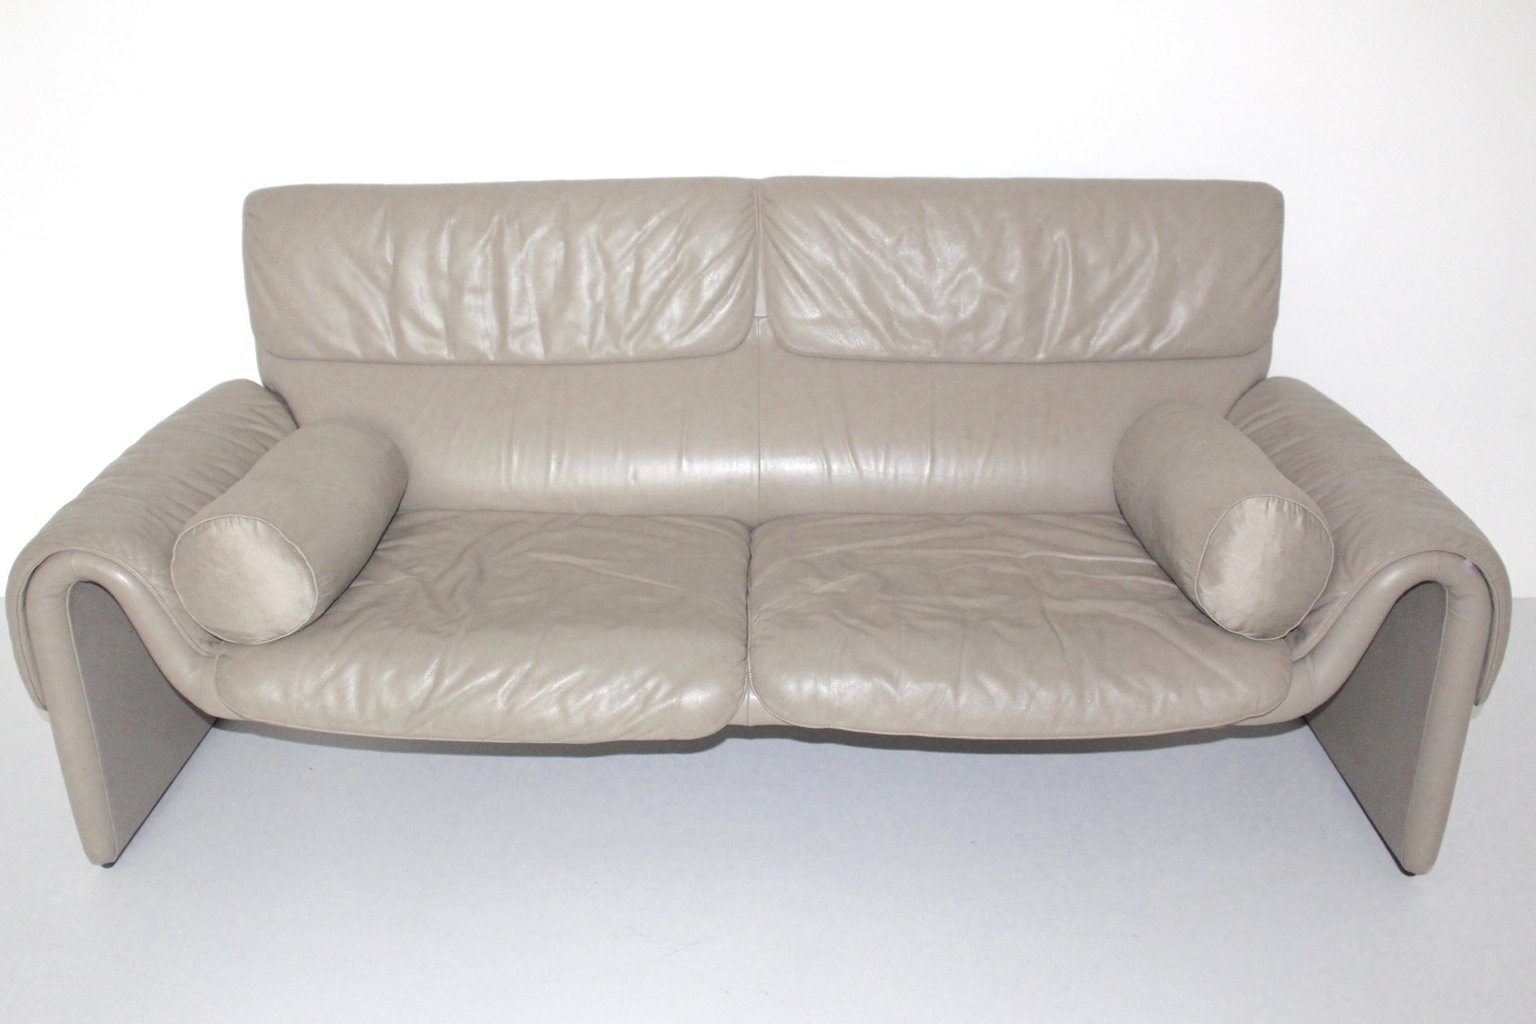 de sede sofa vintage full size leather sleeper sofas ds 2011 from 1980s for sale